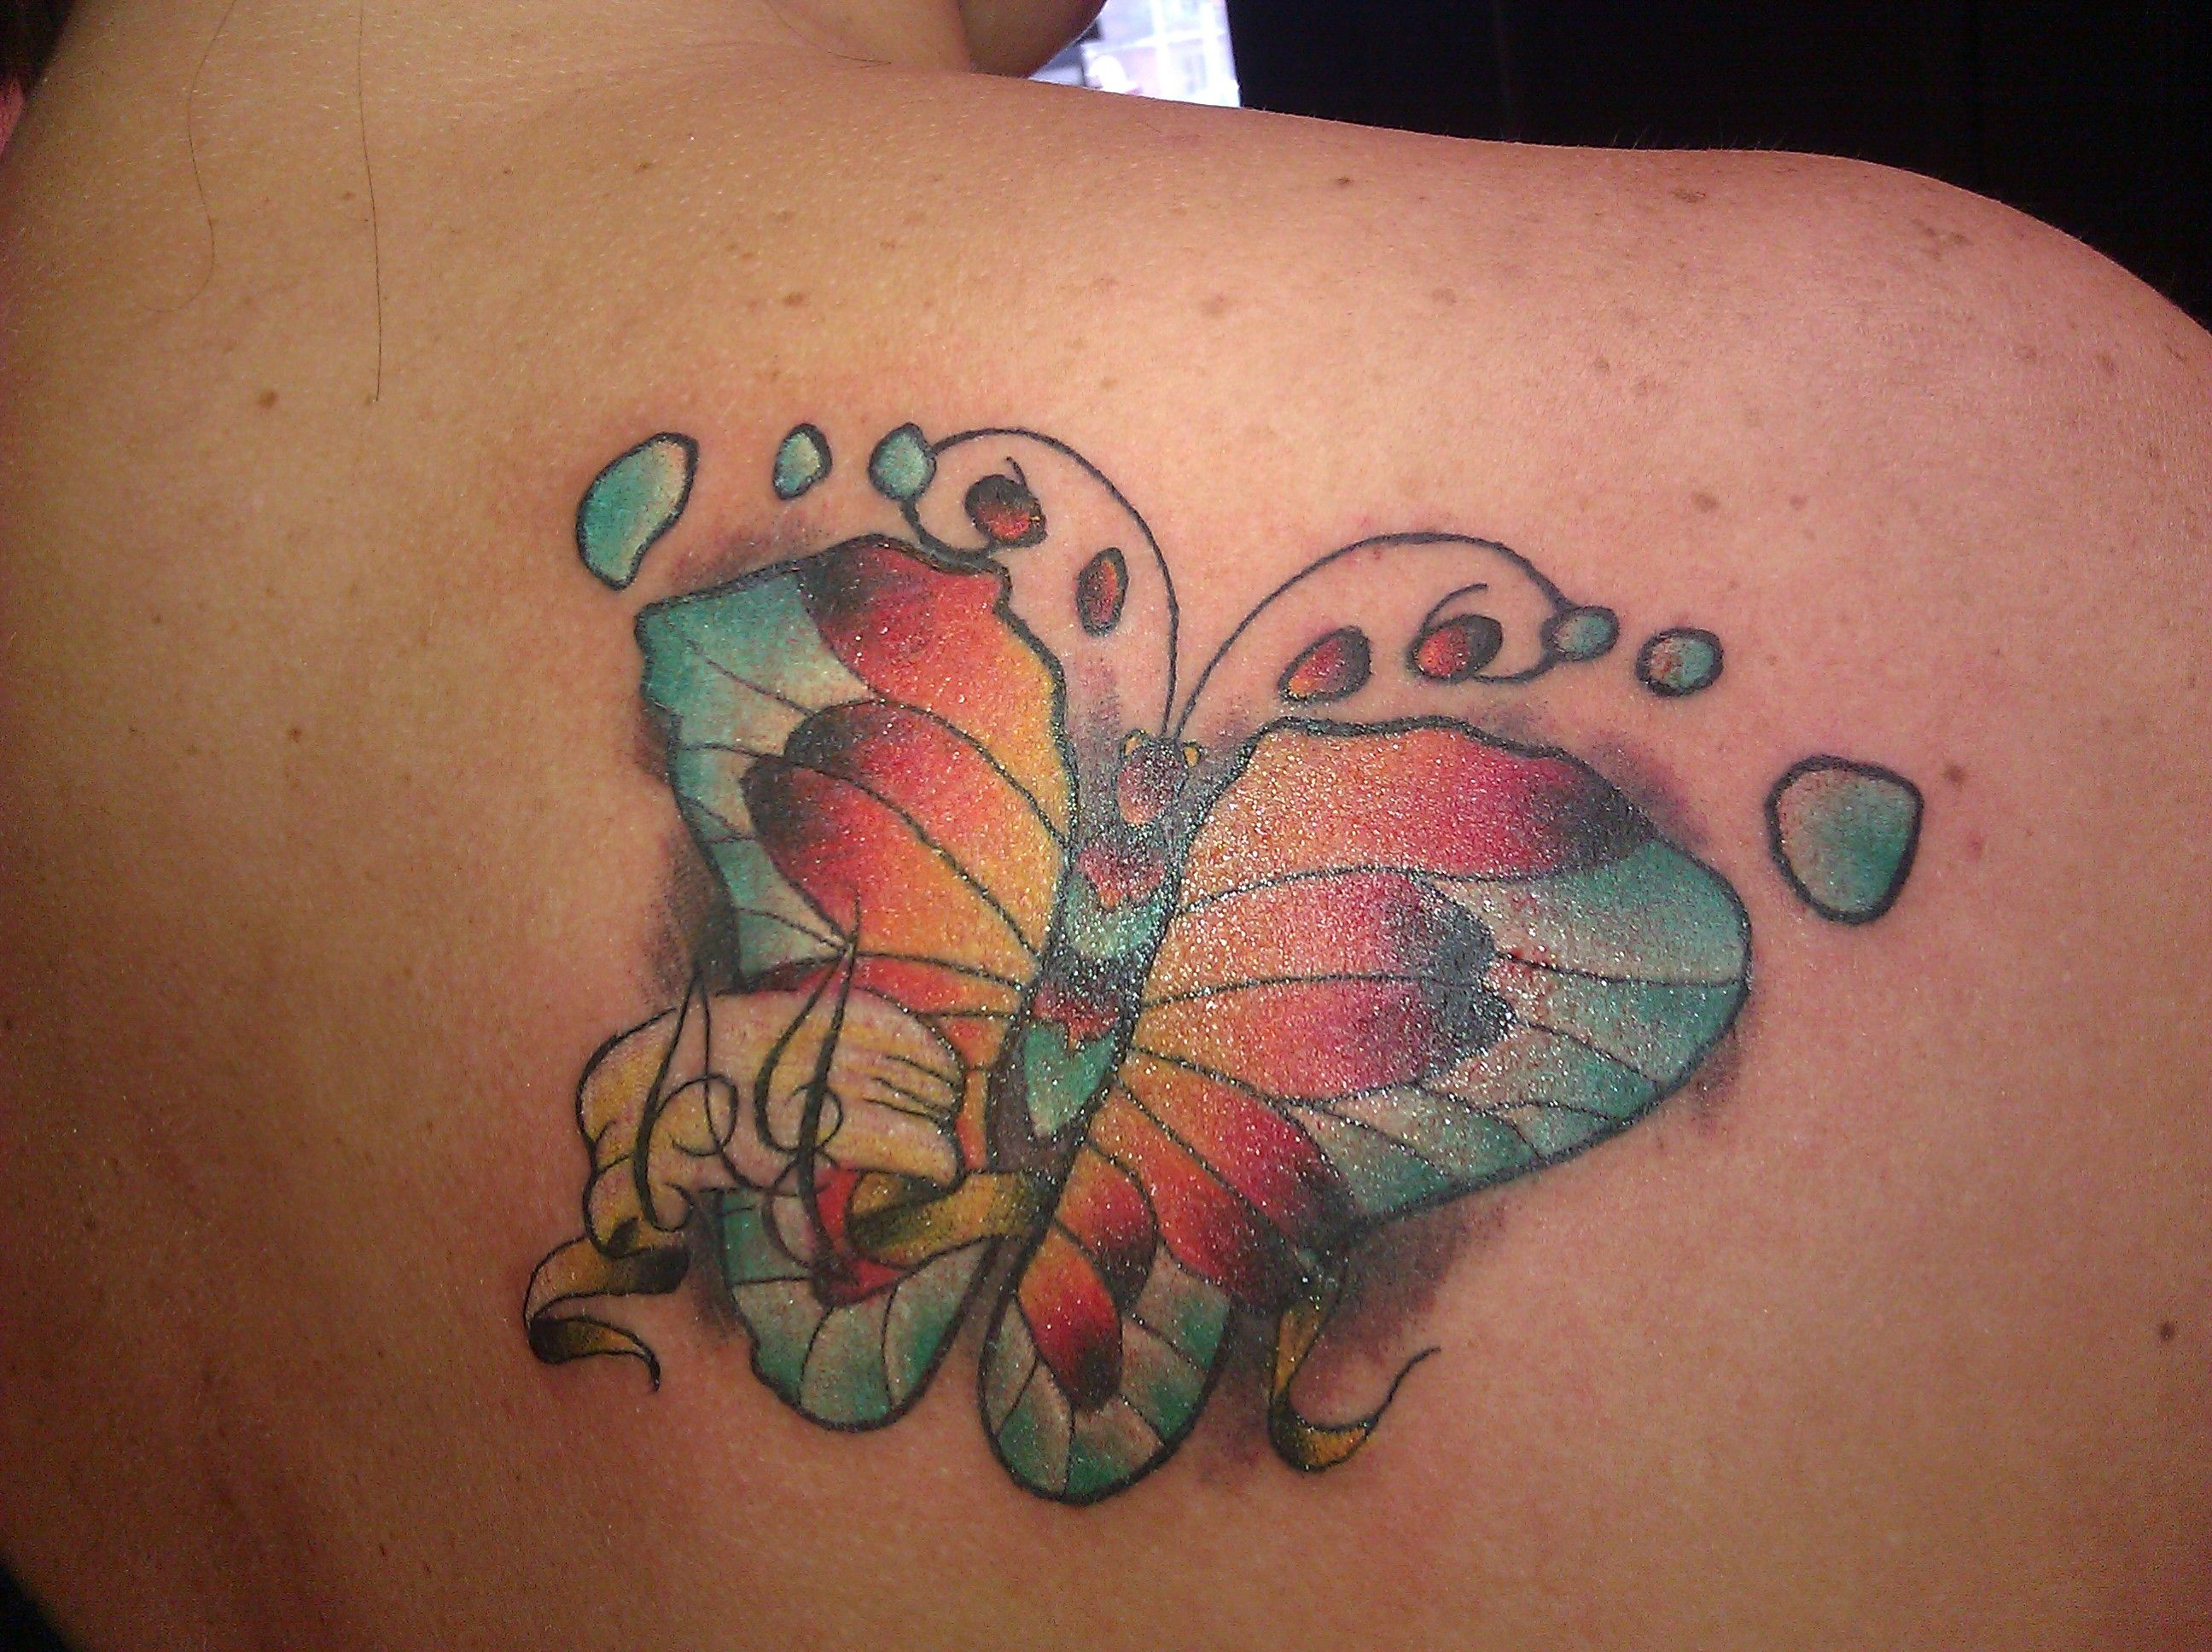 I love my butterfly tattoo, it is made from my 2nd son's